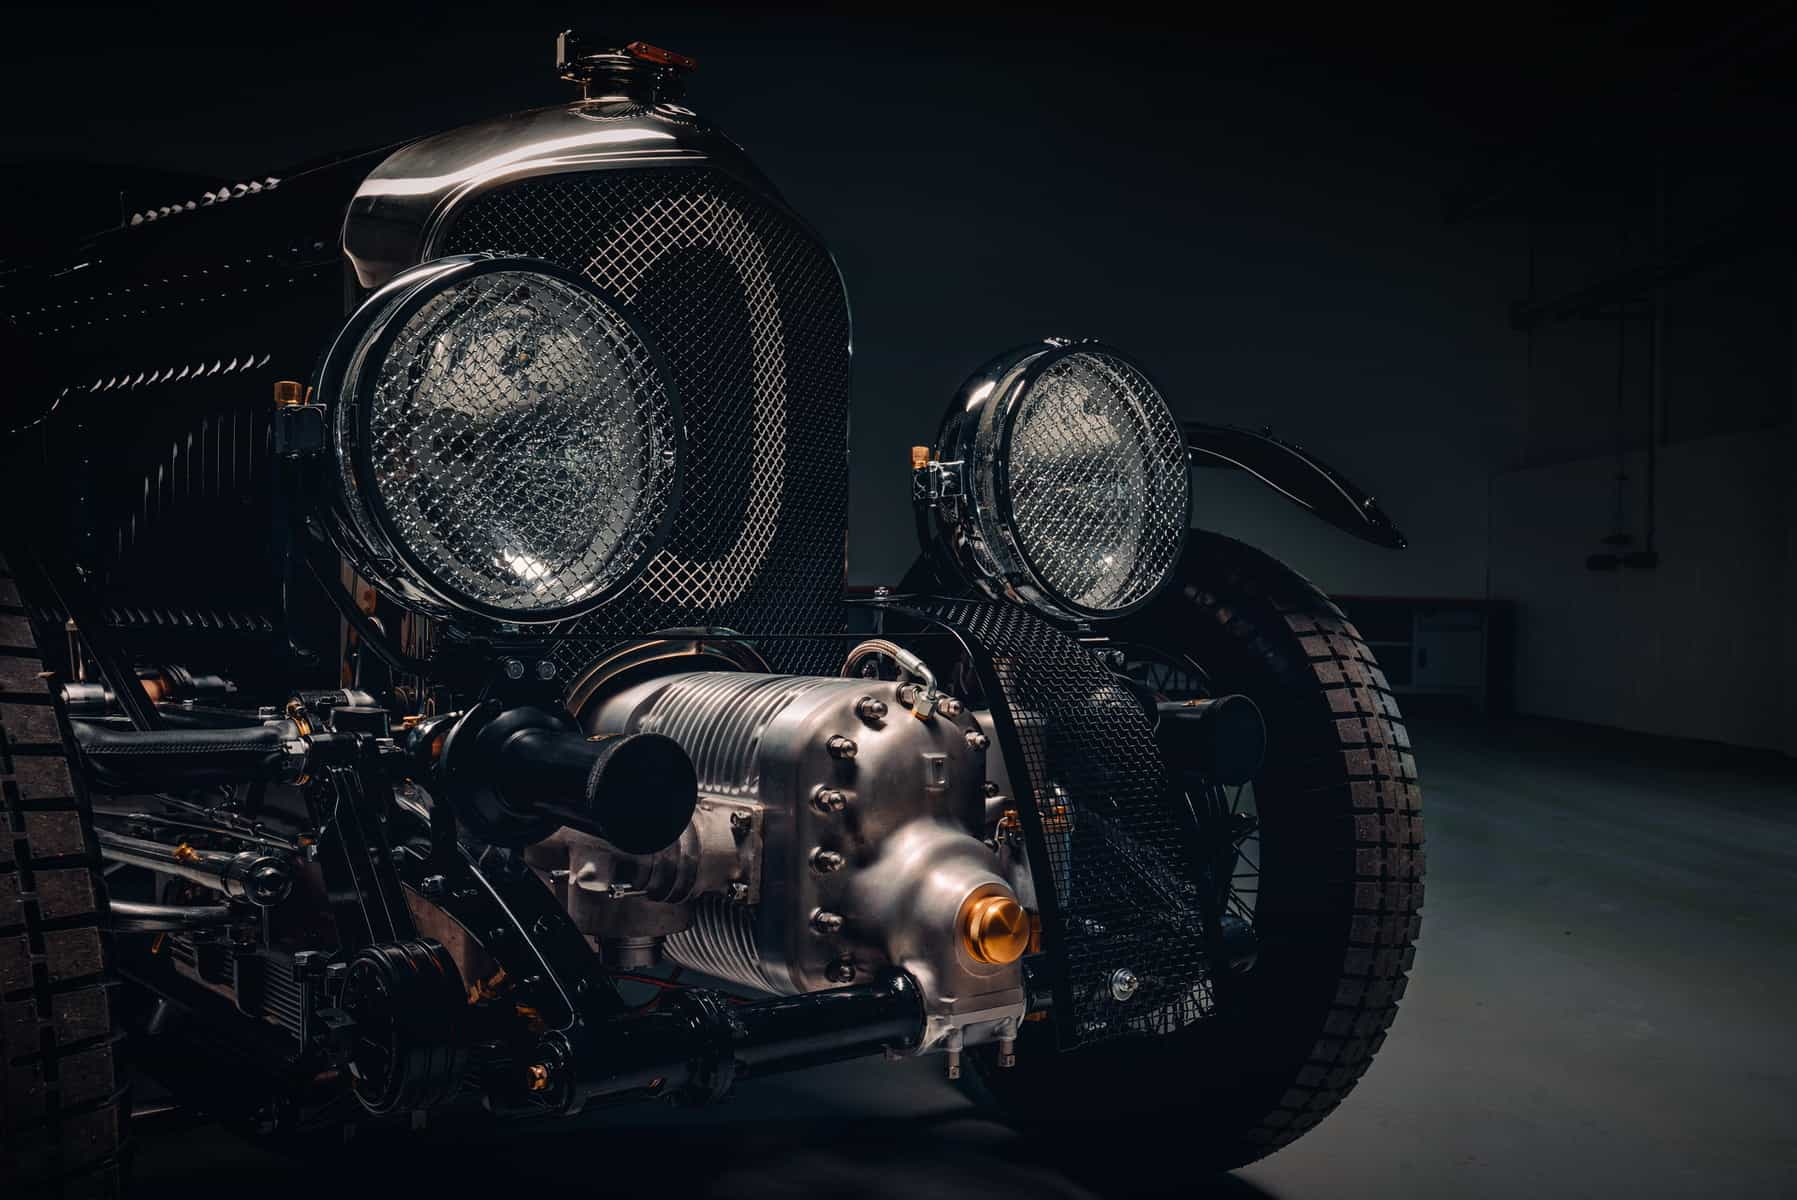 Bentley Blower Continuation Series 5